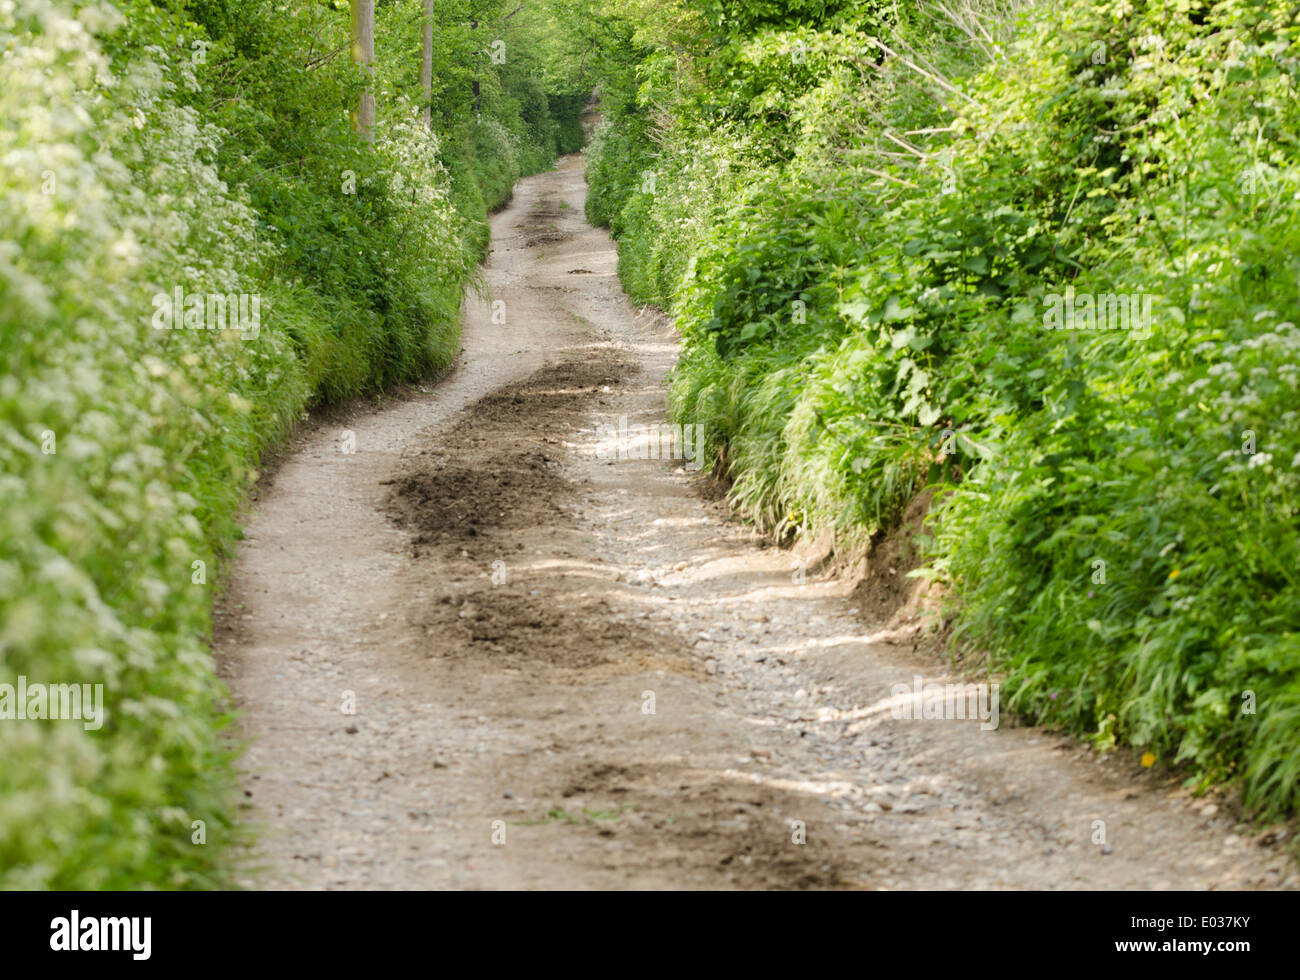 Narrow country lane with greenery either side. - Stock Image